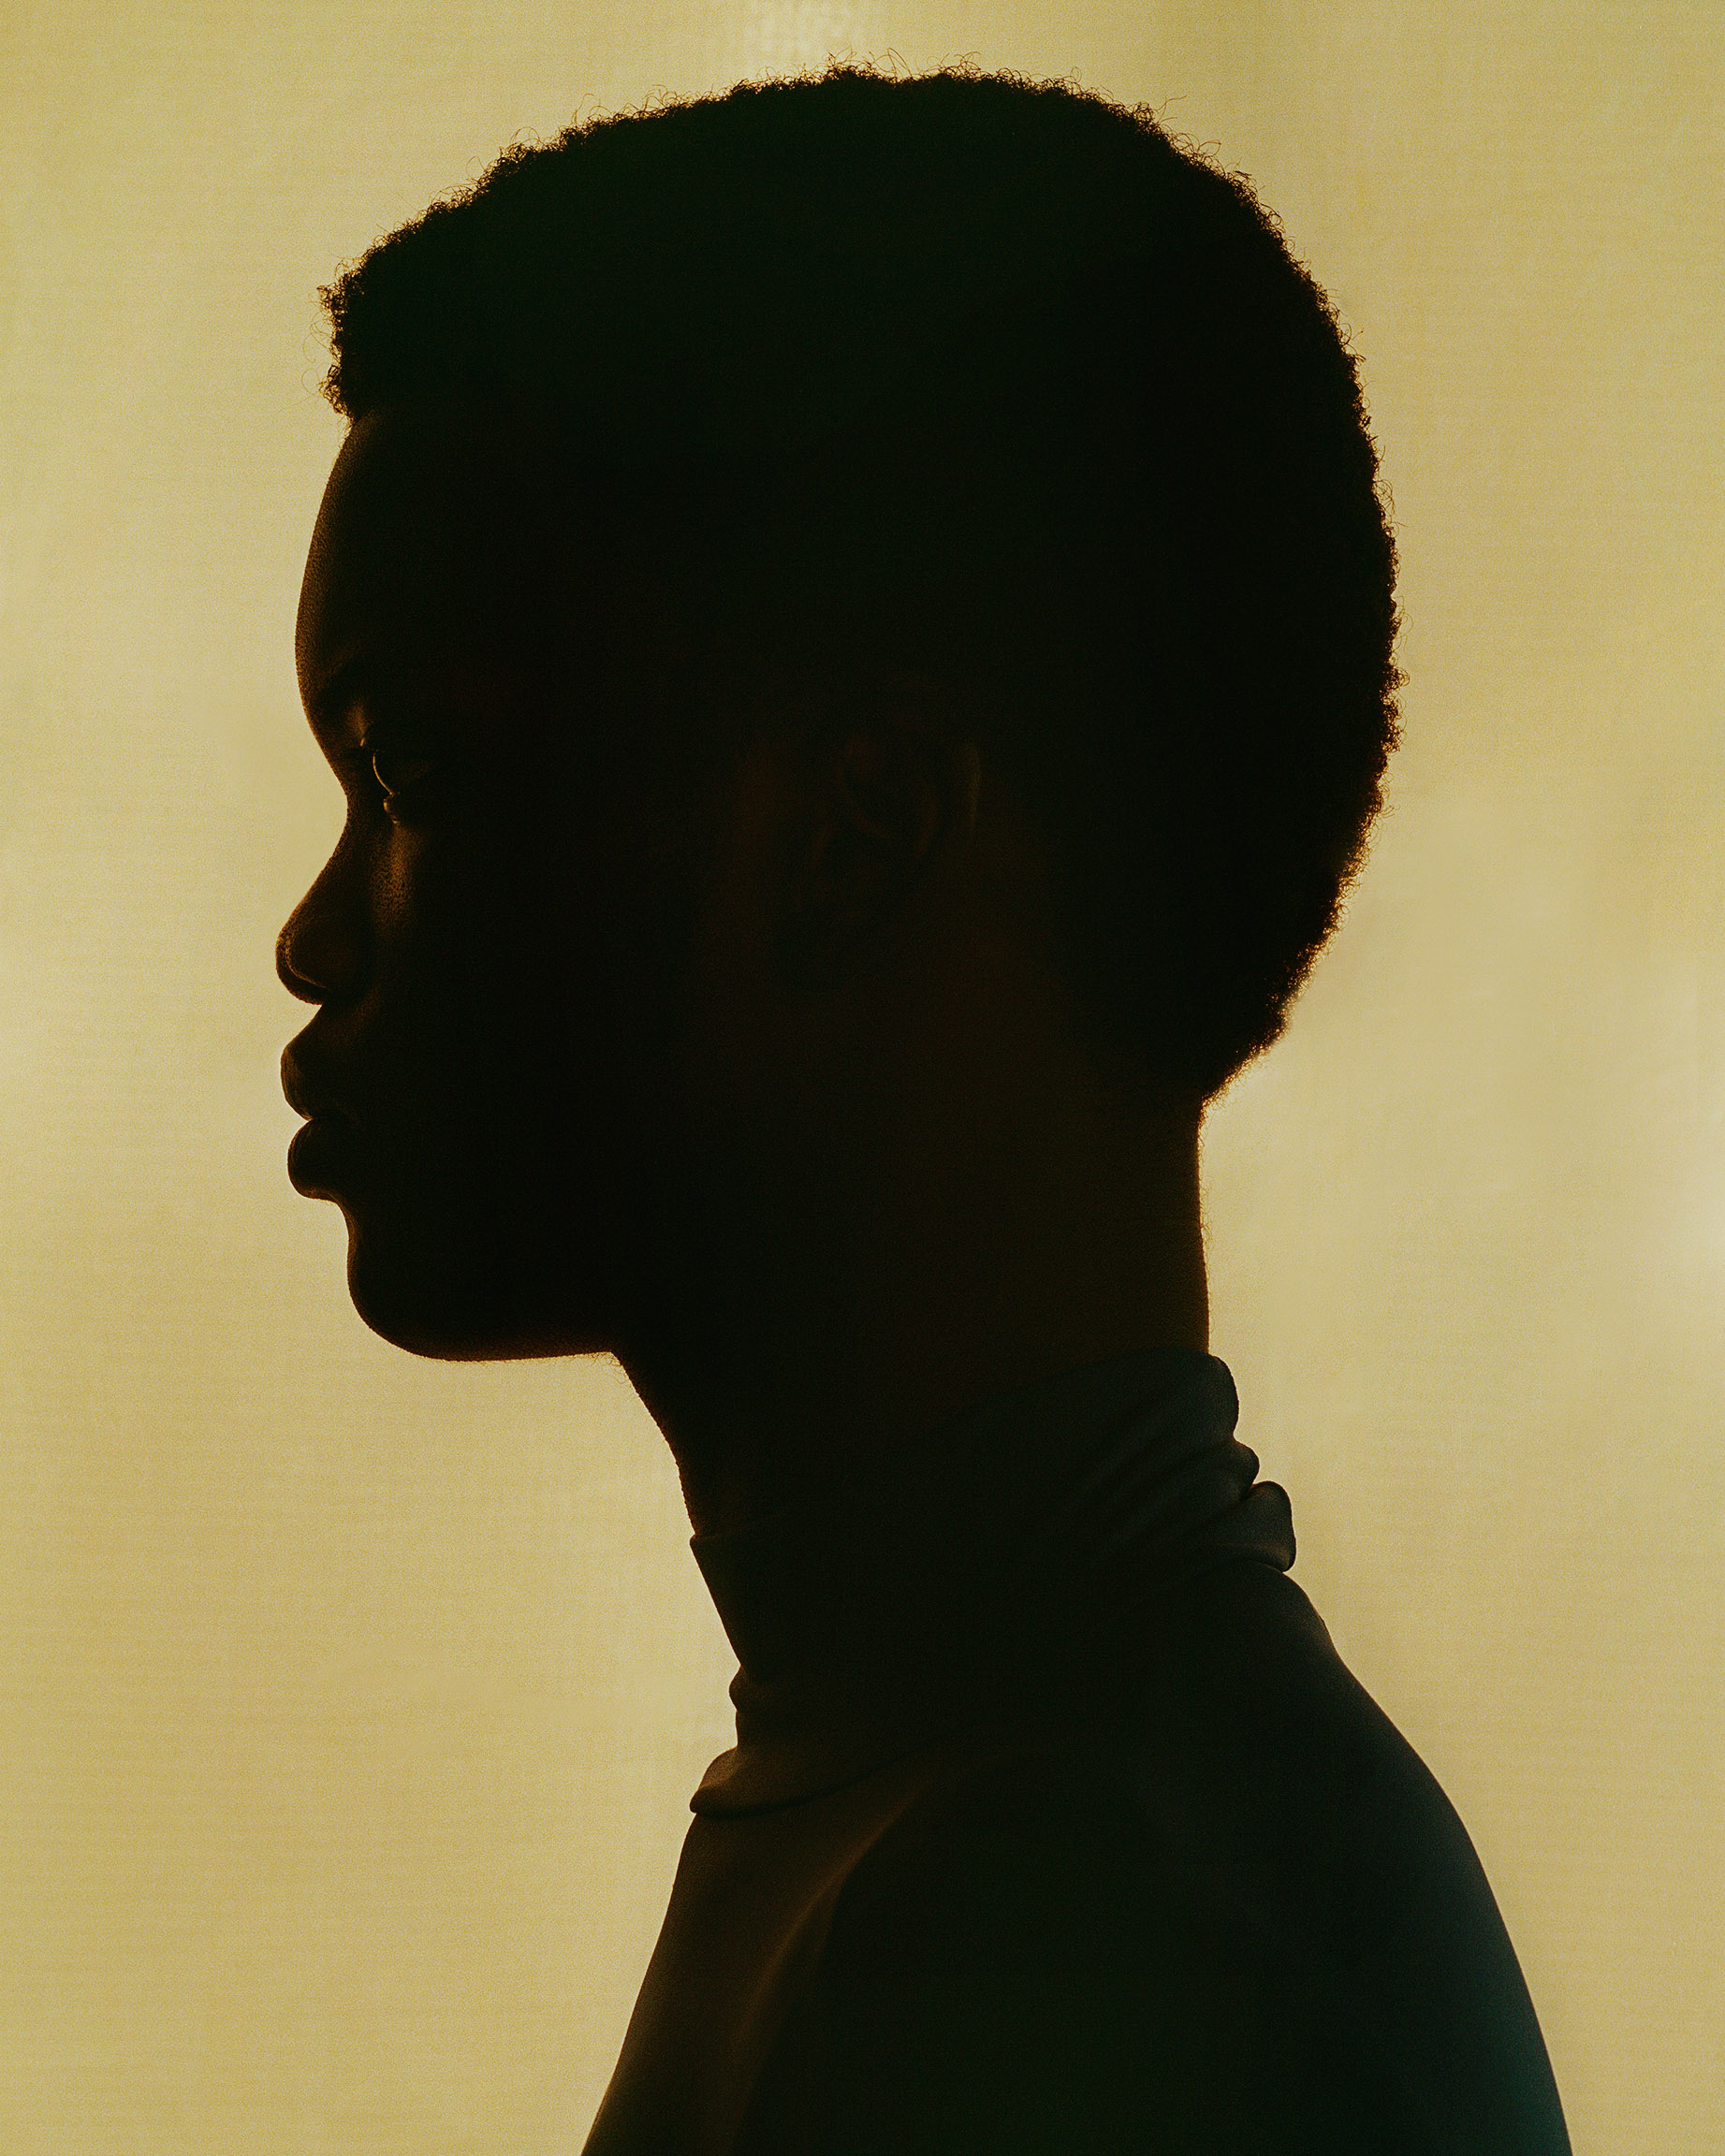 profile silhouette of black female model on light yellow background photographed by Oumayma B Tanfous for Moncler as a story for Document Journal magazine